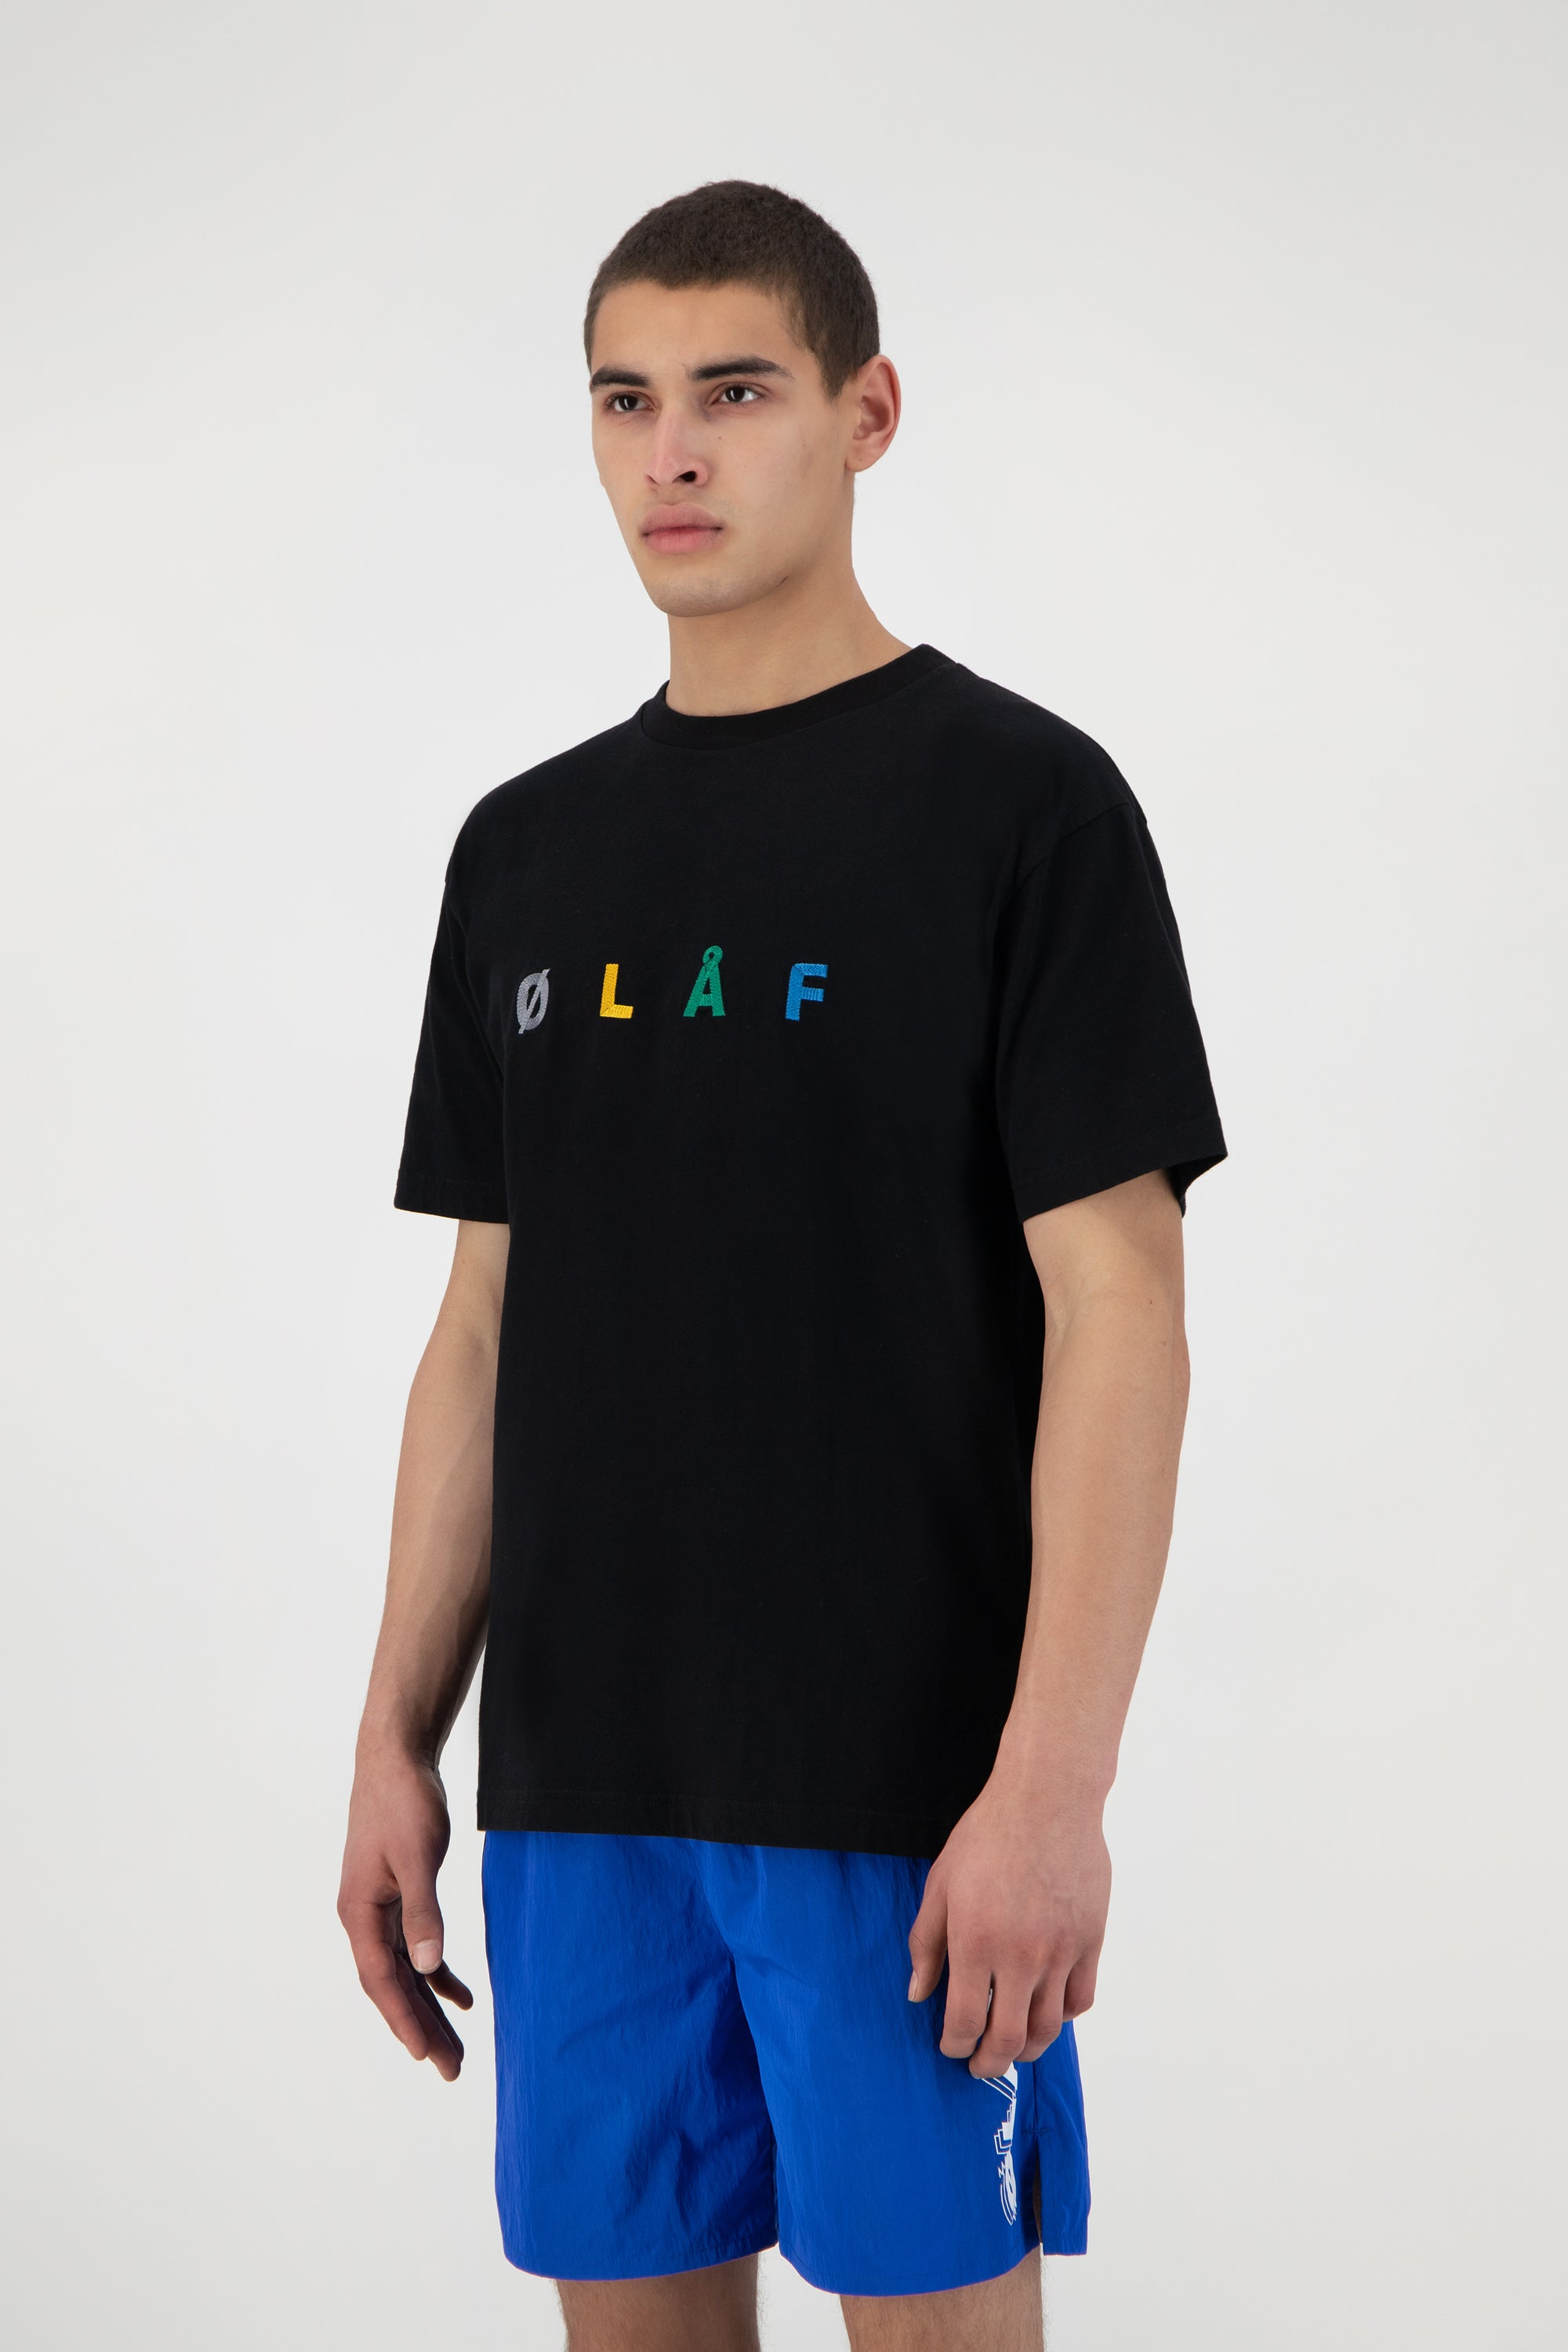 ØLÅF Chainstitch Tee - Black